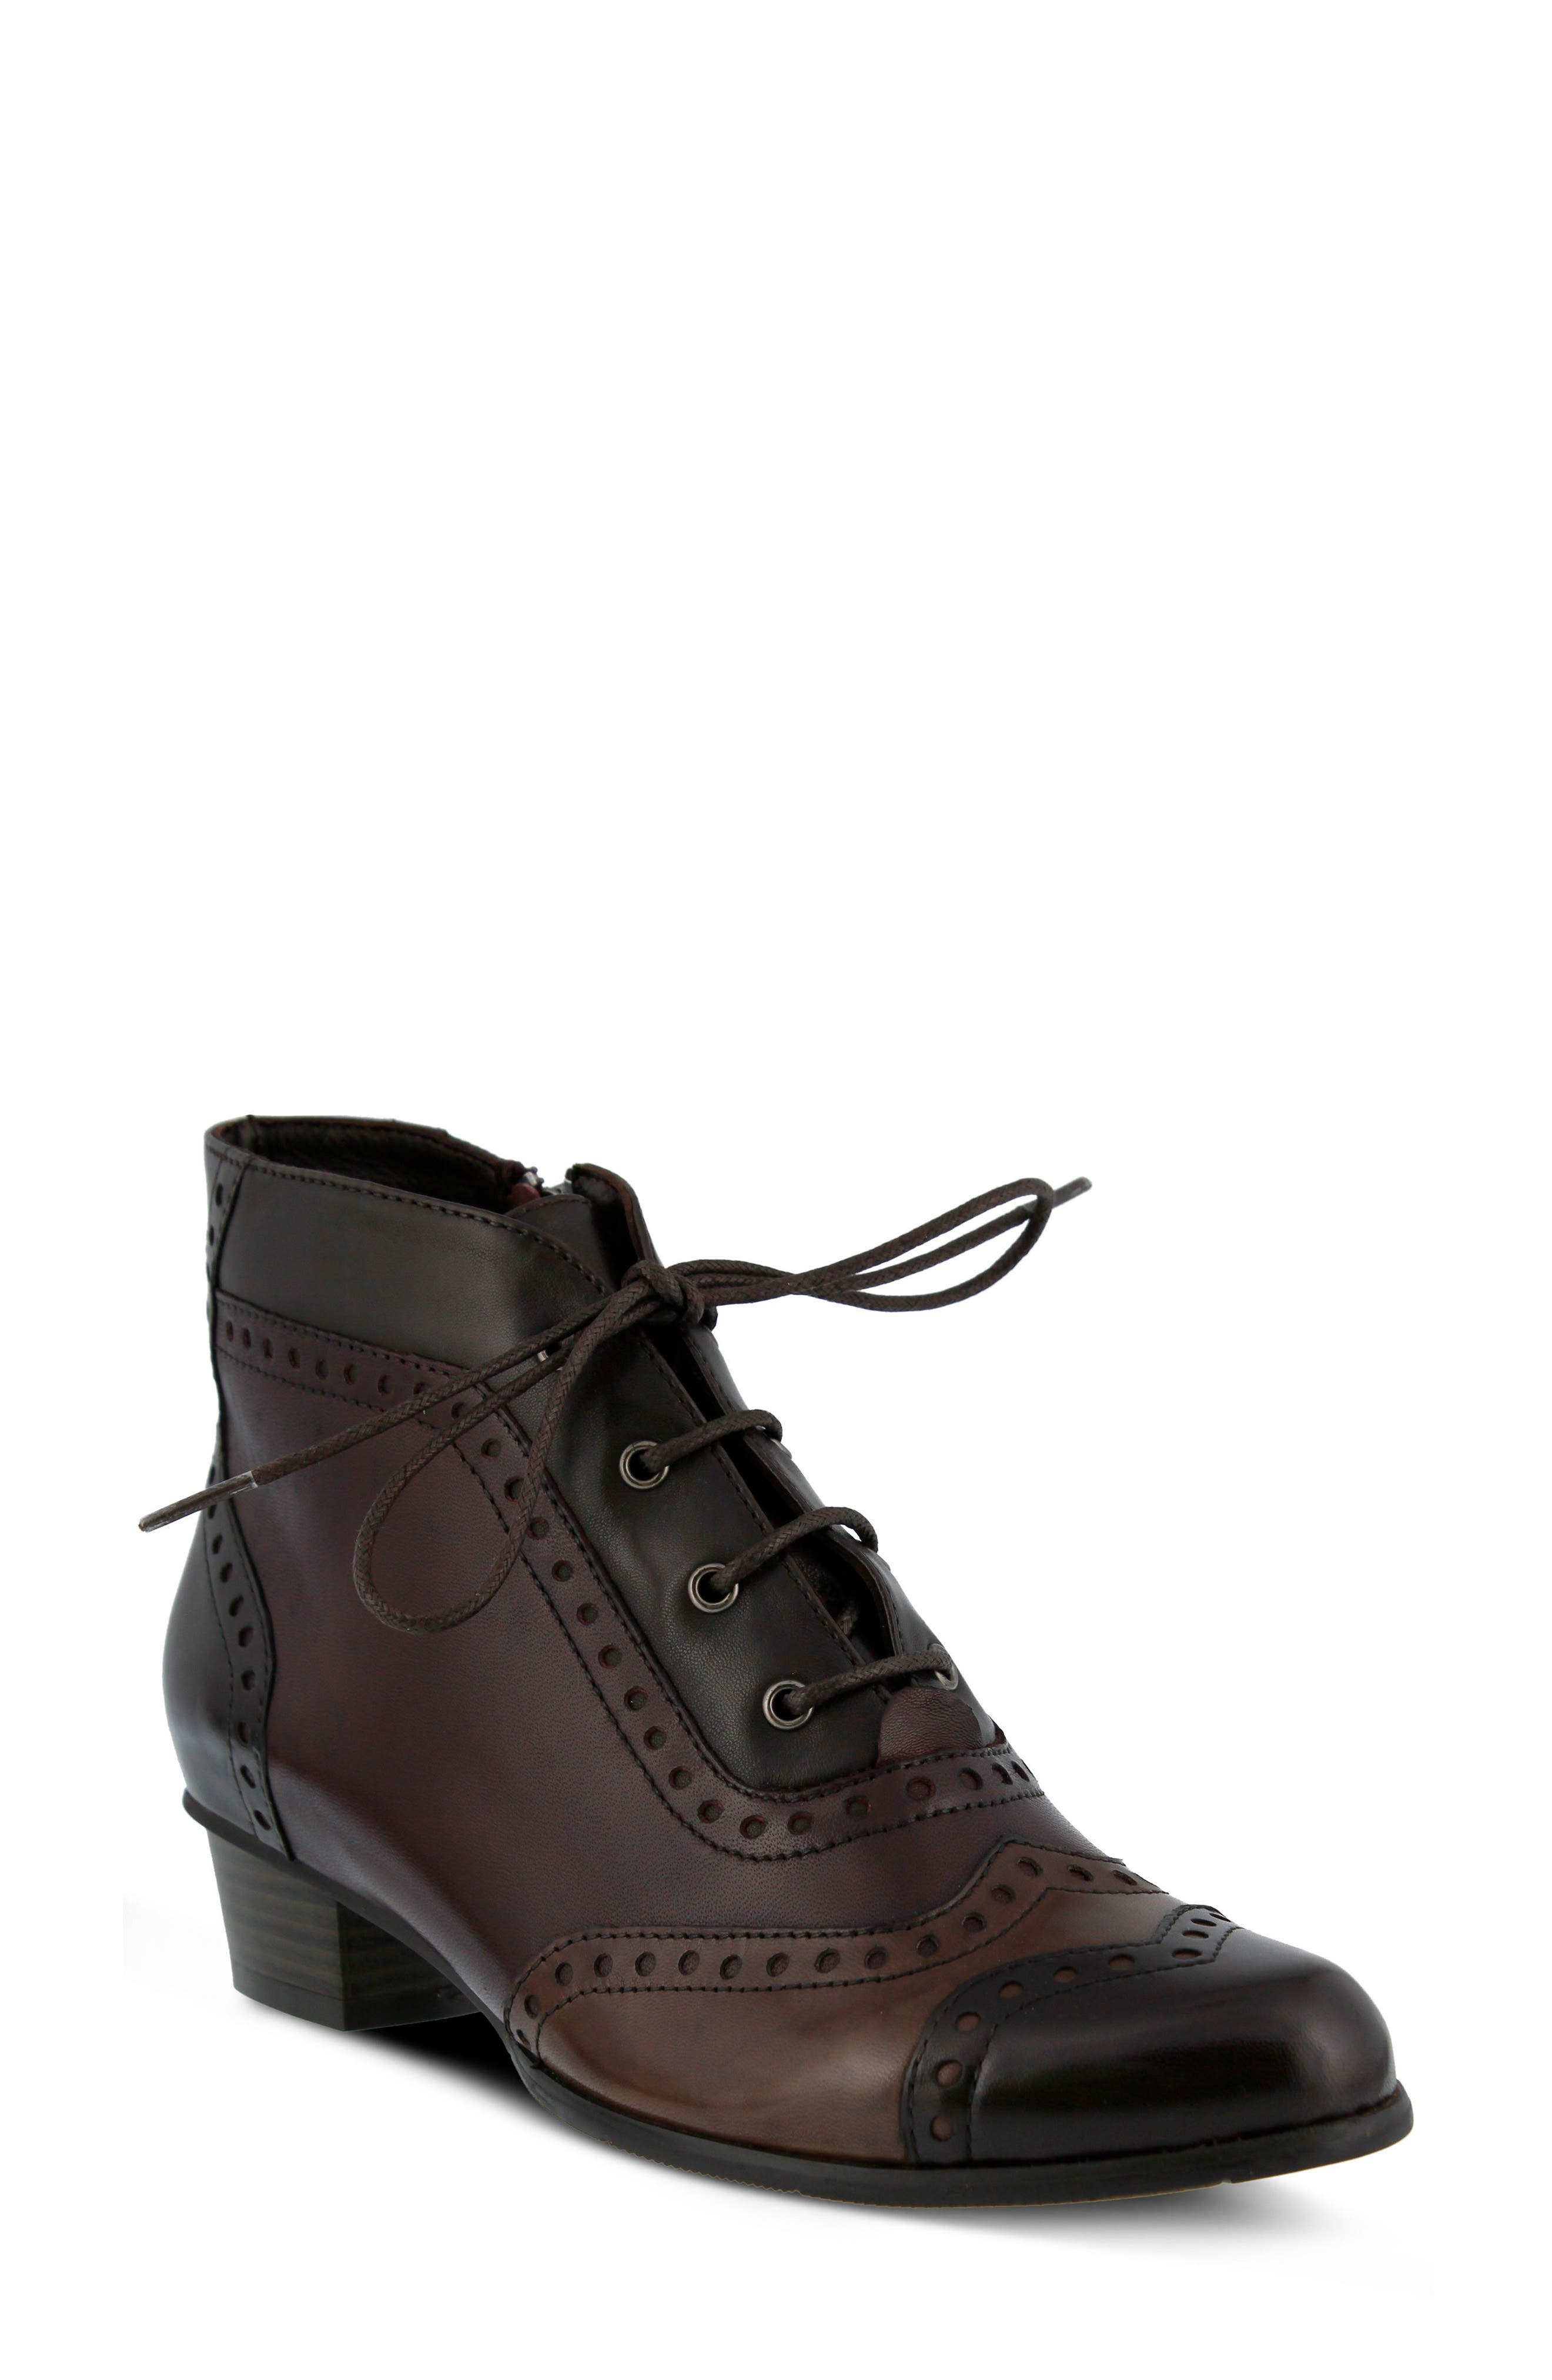 Heroic Bootie,                         Main,                         color, Brown Multi Leather